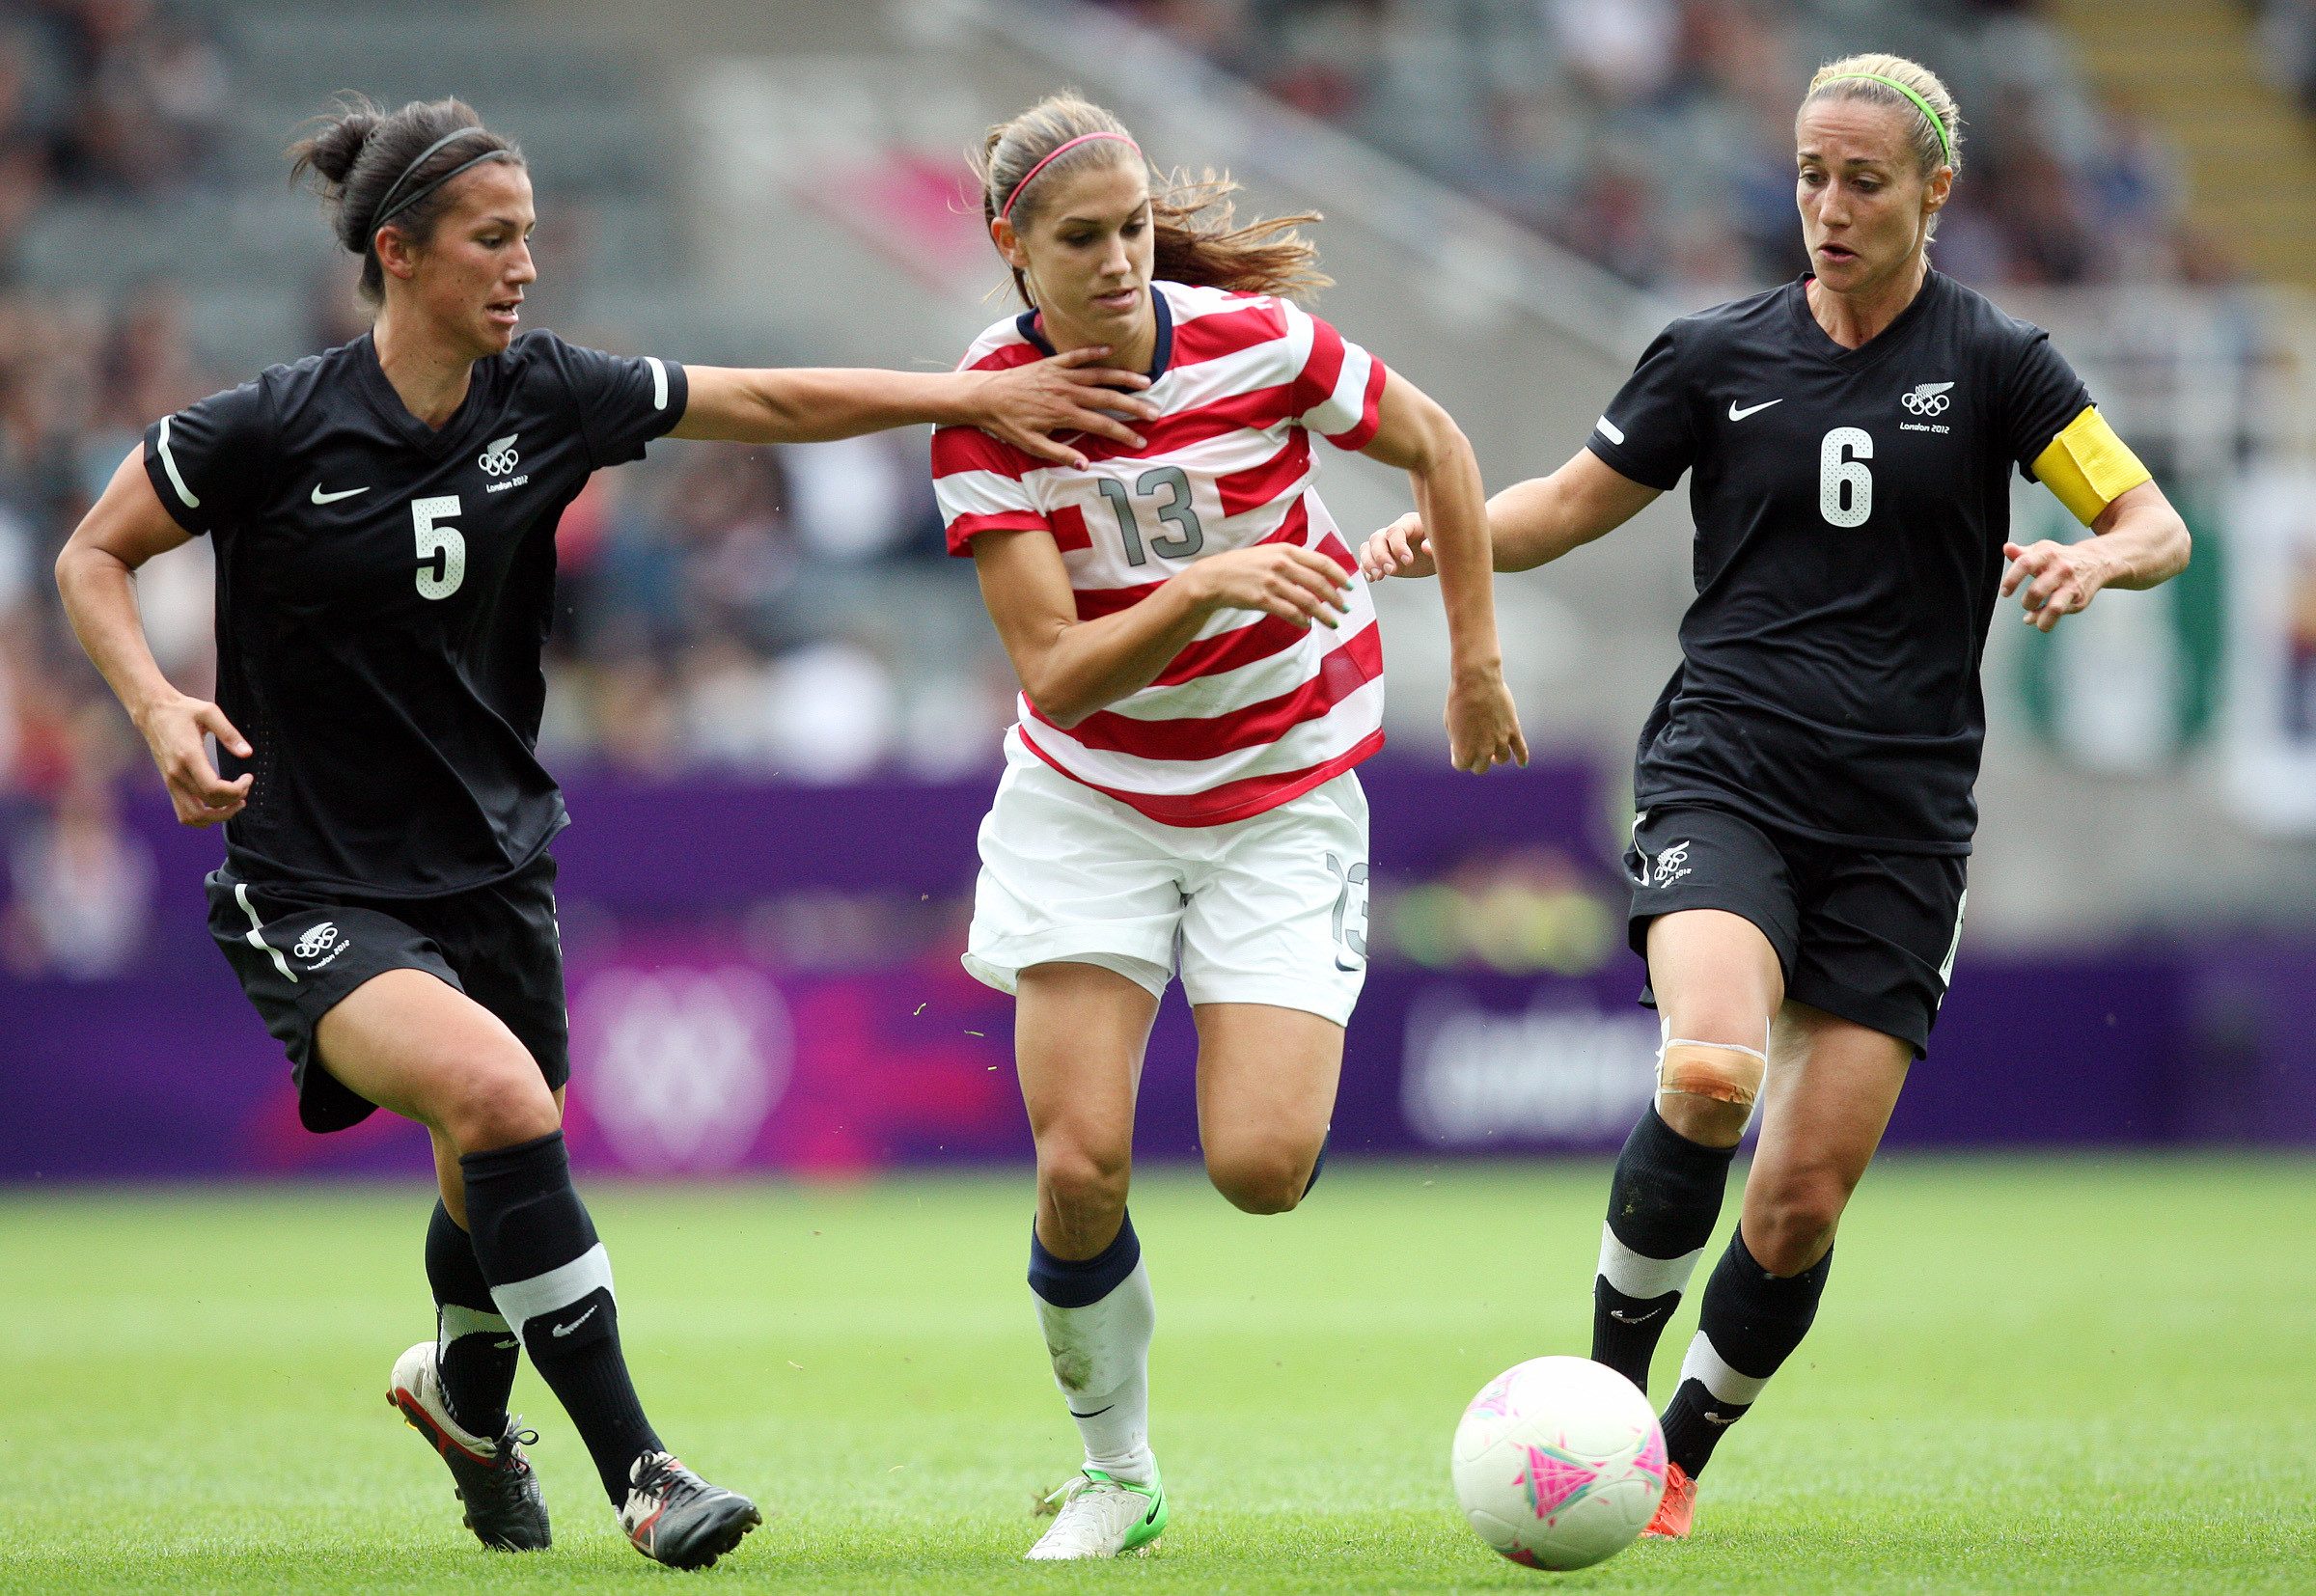 Us womens soccer wallpaper 65 images 1920x1080 alex morgan abby wambach to start for uswnt vs nigeria soccer sporting news publicscrutiny Image collections